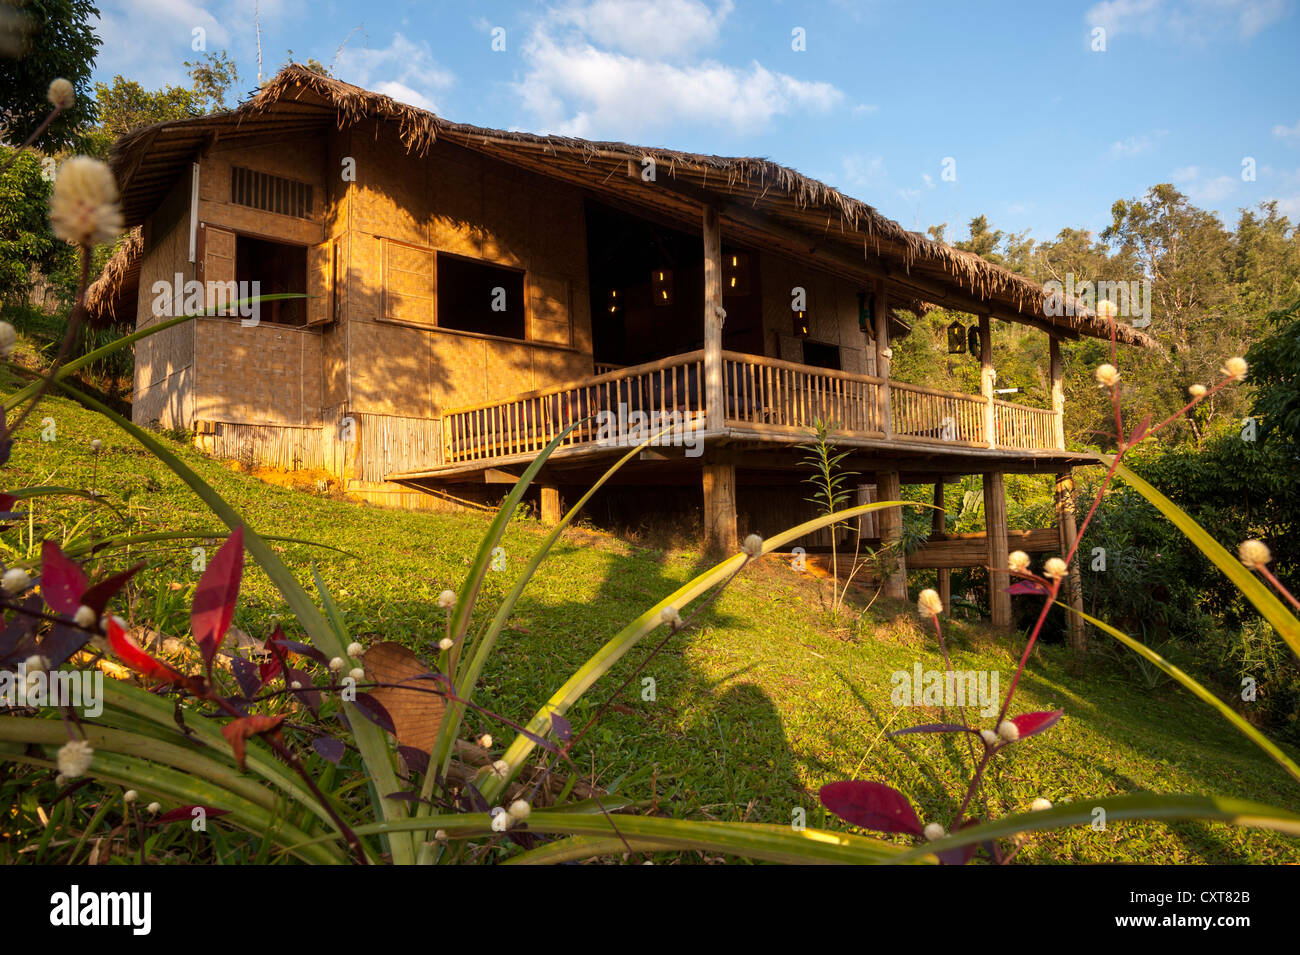 Bamboo hut with a porch or veranda, accommodation, Lanjia Lodge, Northern Thailand, Thailand, Asia - Stock Image